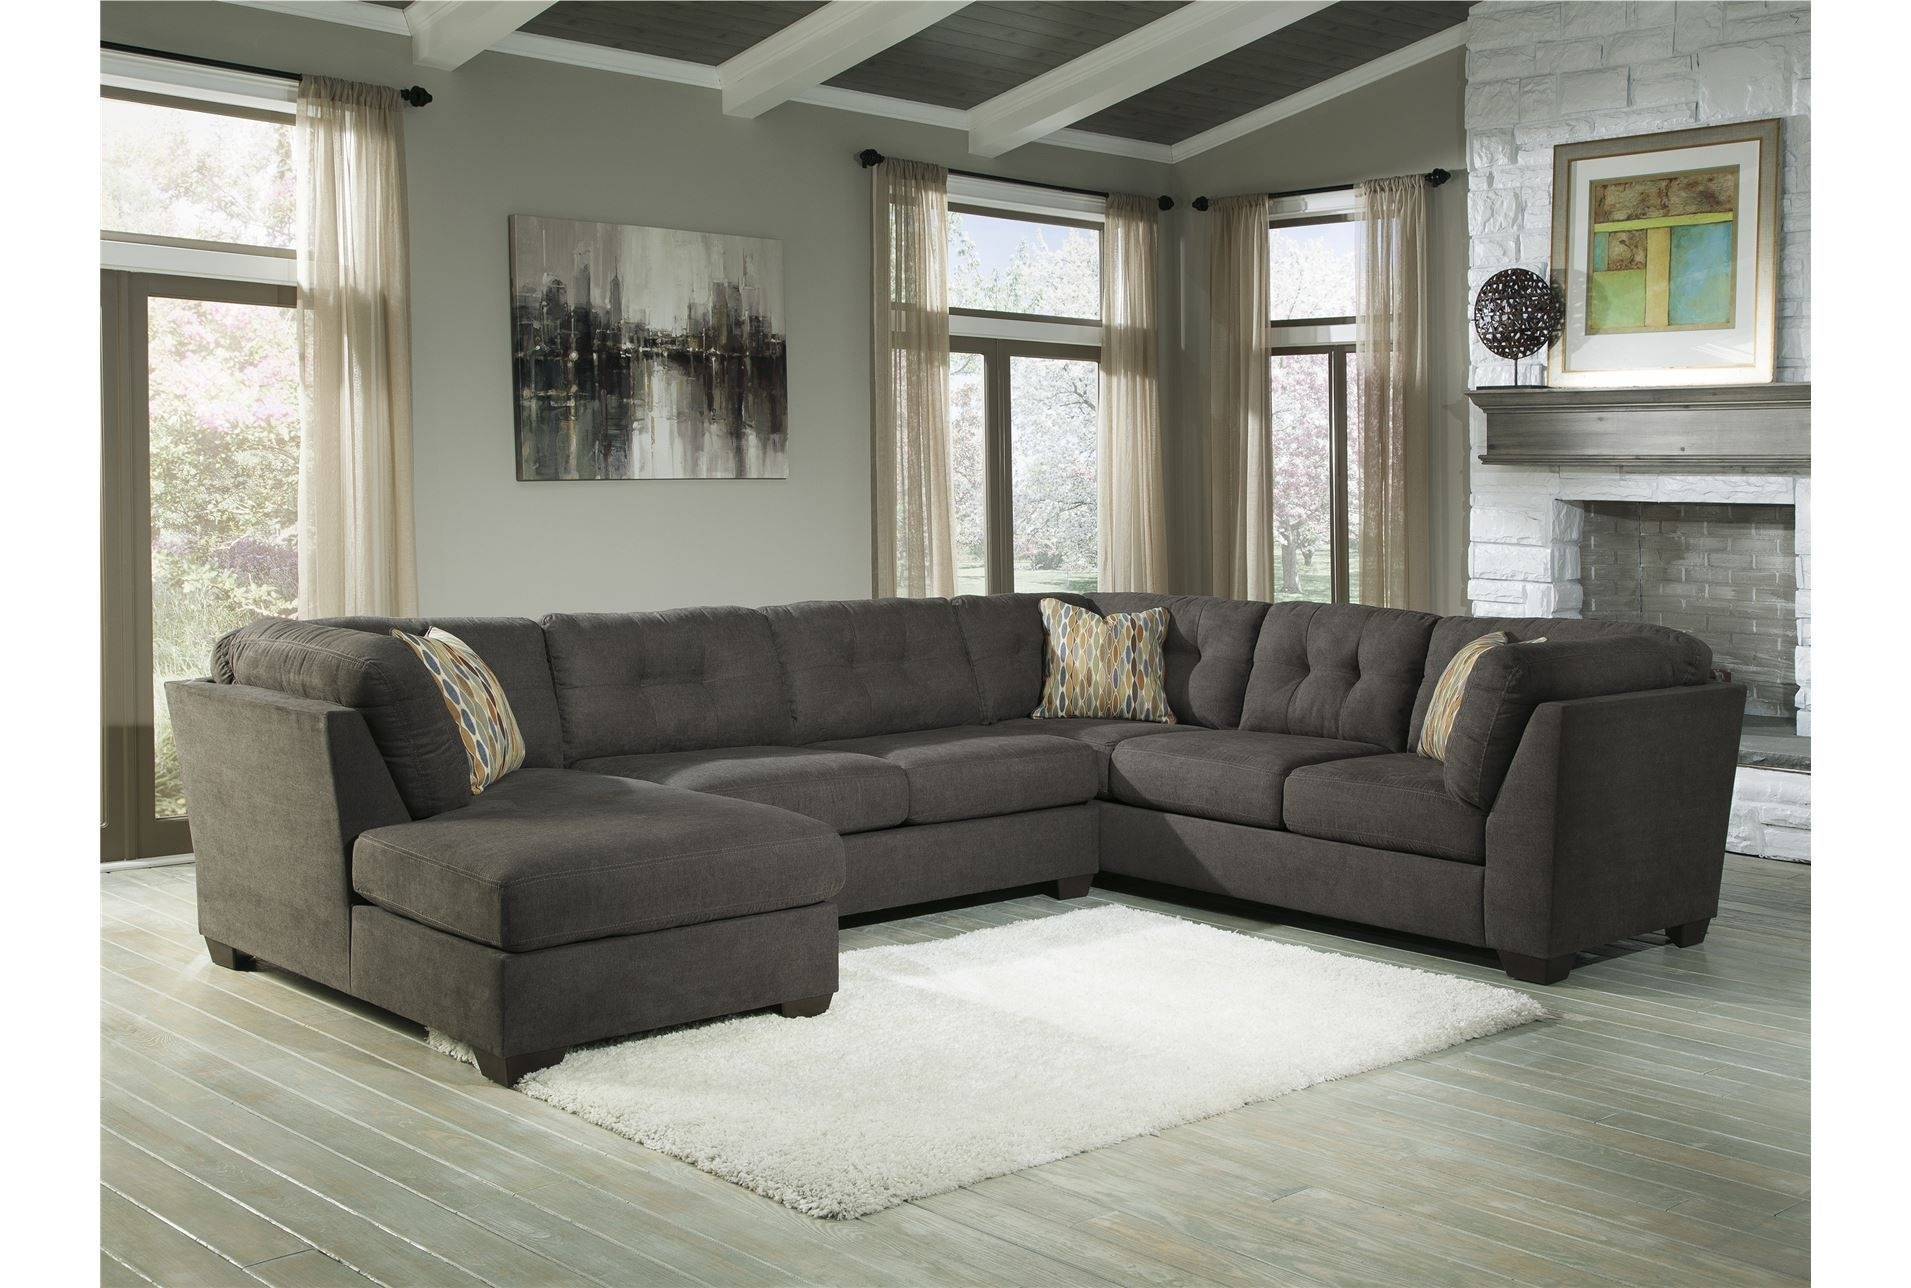 Delta City Steel 3 Piece Sectional W/laf Chaise  Living Room Option With Regard To Karen 3 Piece Sectionals (Image 9 of 25)